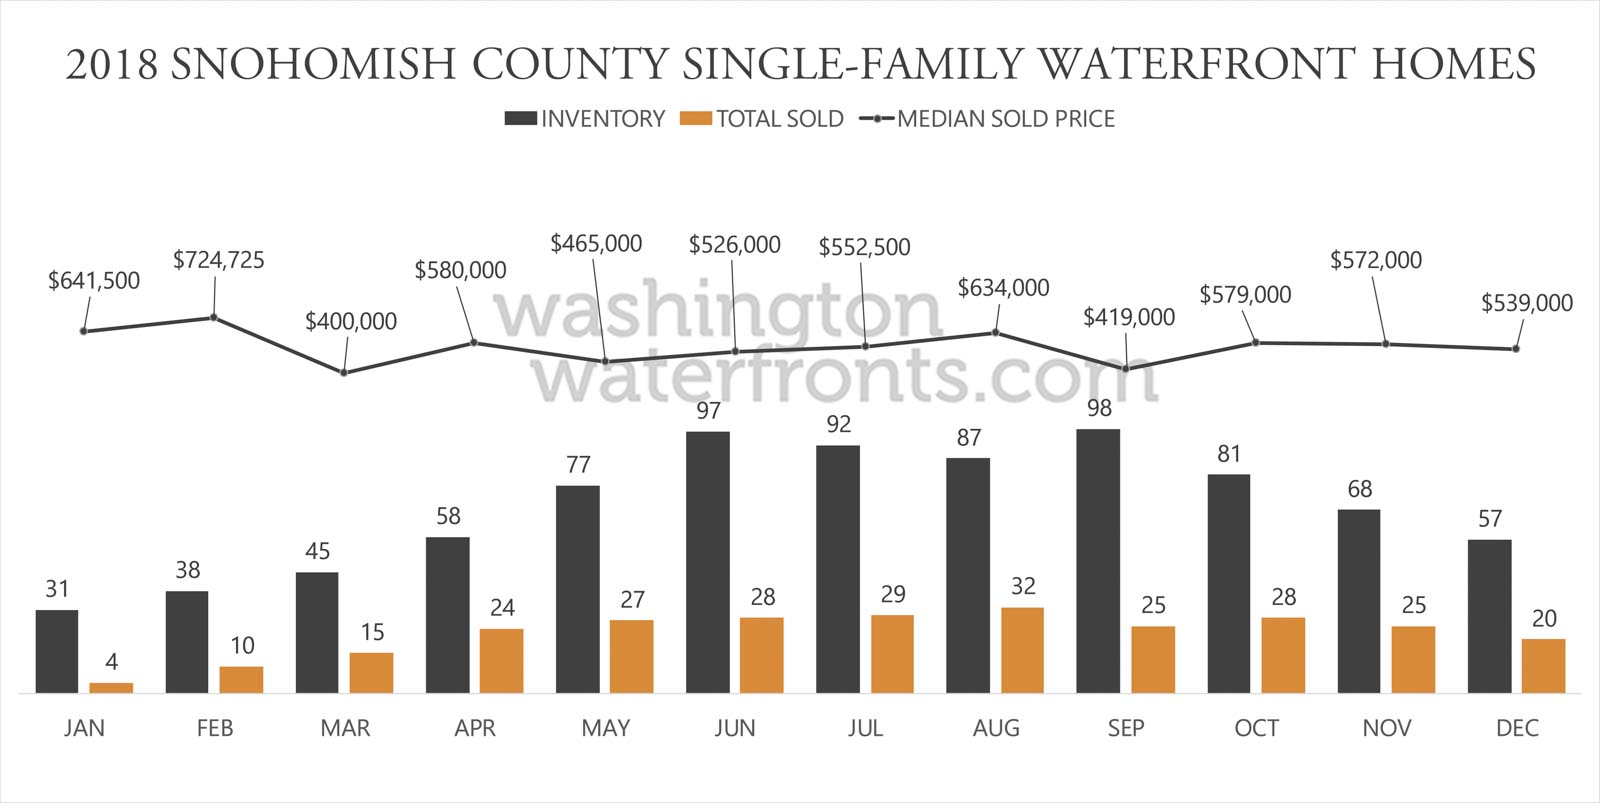 Snohomish County Waterfront Inventory